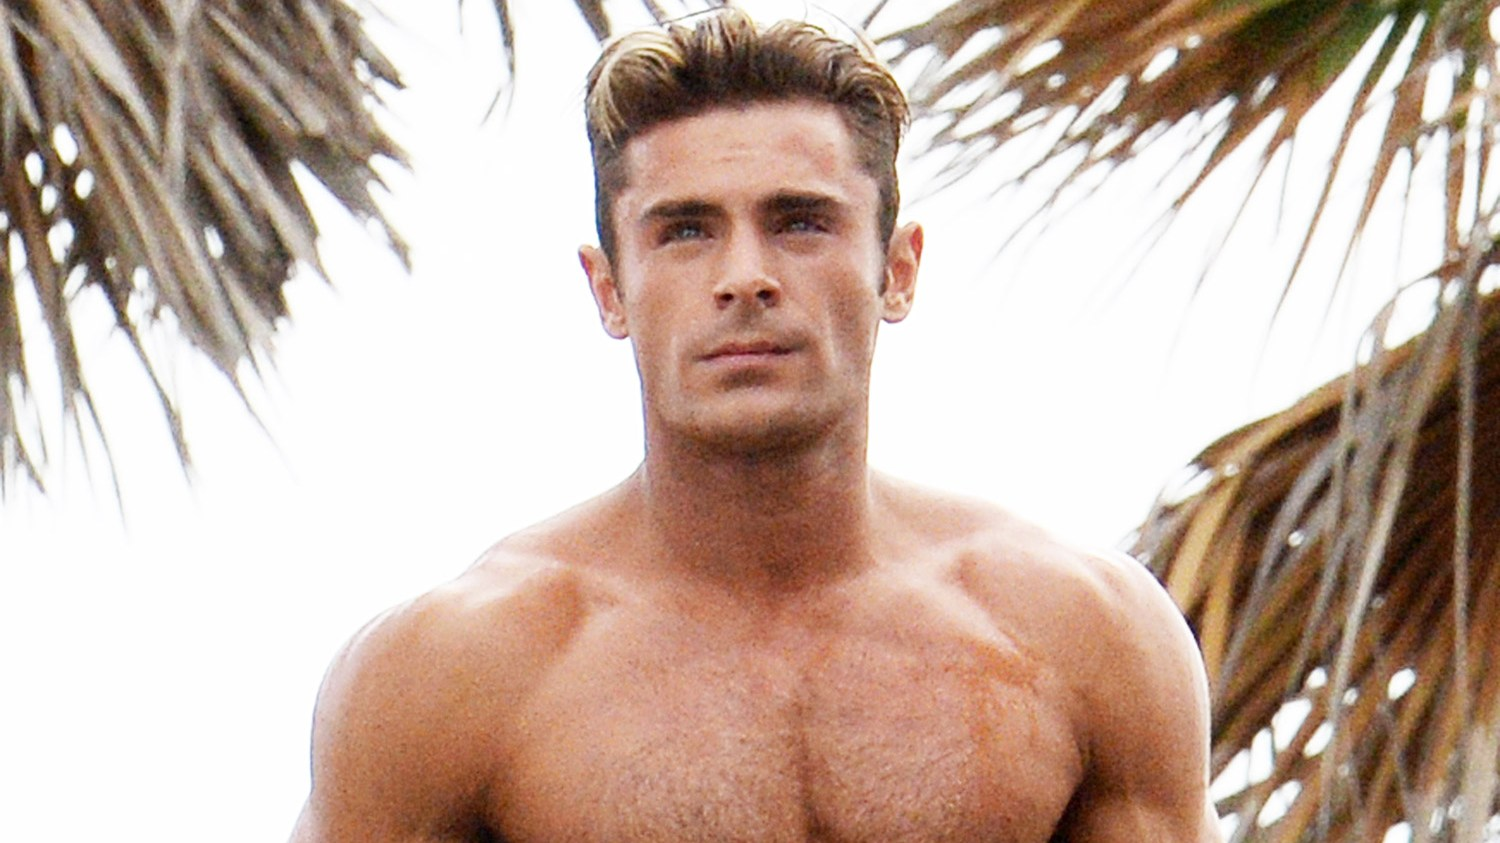 Zac Efron Got Ripped For Baywatch To Not Look Tiny Next To The Rock